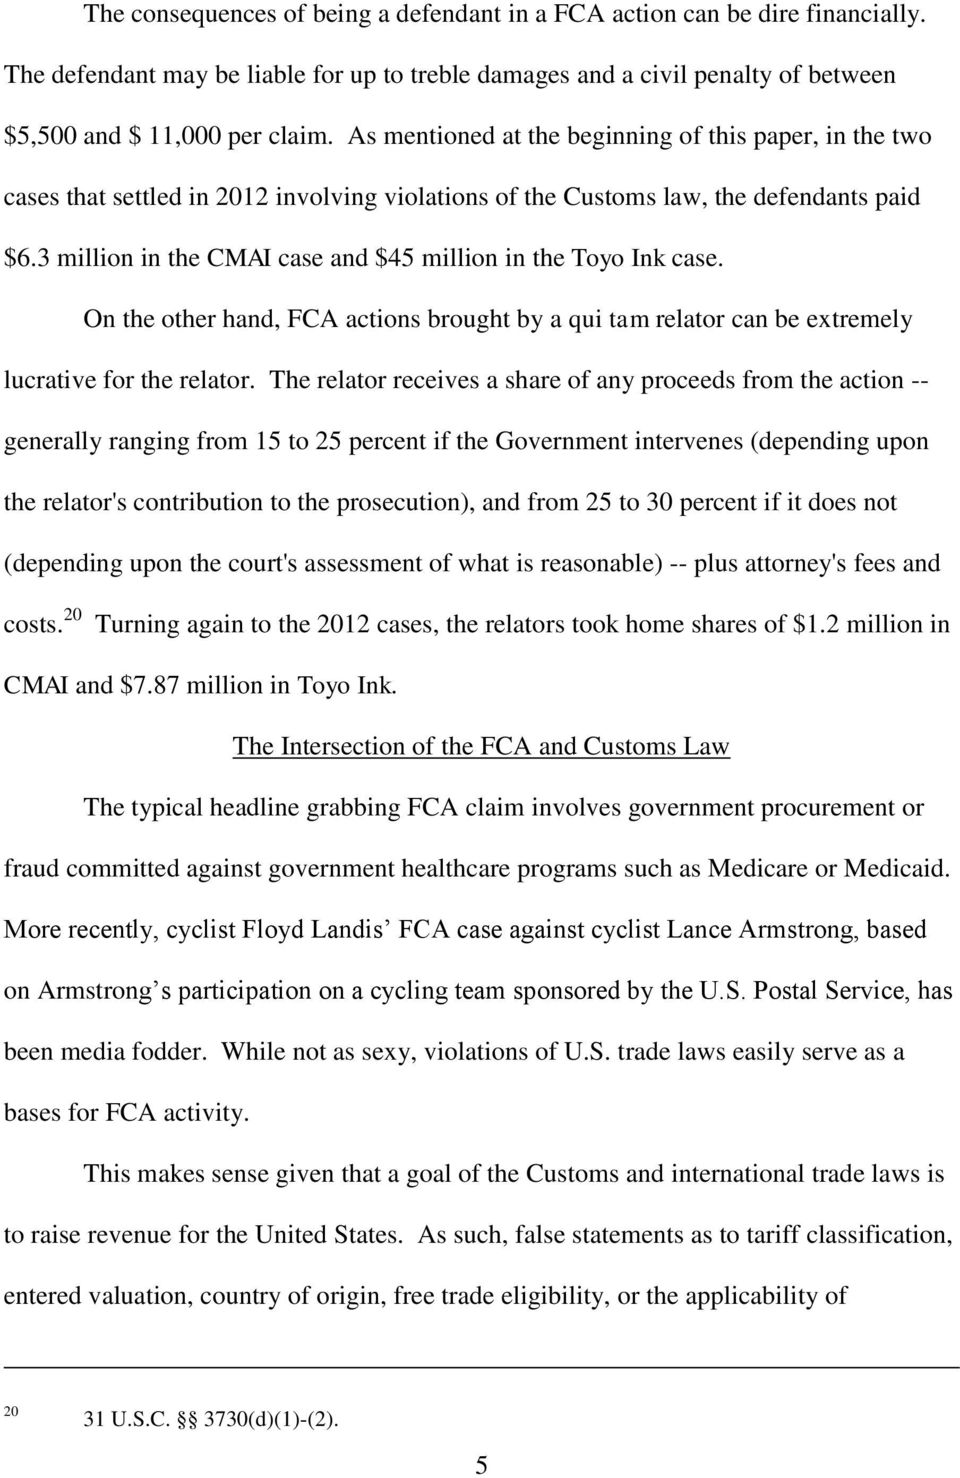 3 million in the CMAI case and $45 million in the Toyo Ink case. On the other hand, FCA actions brought by a qui tam relator can be extremely lucrative for the relator.